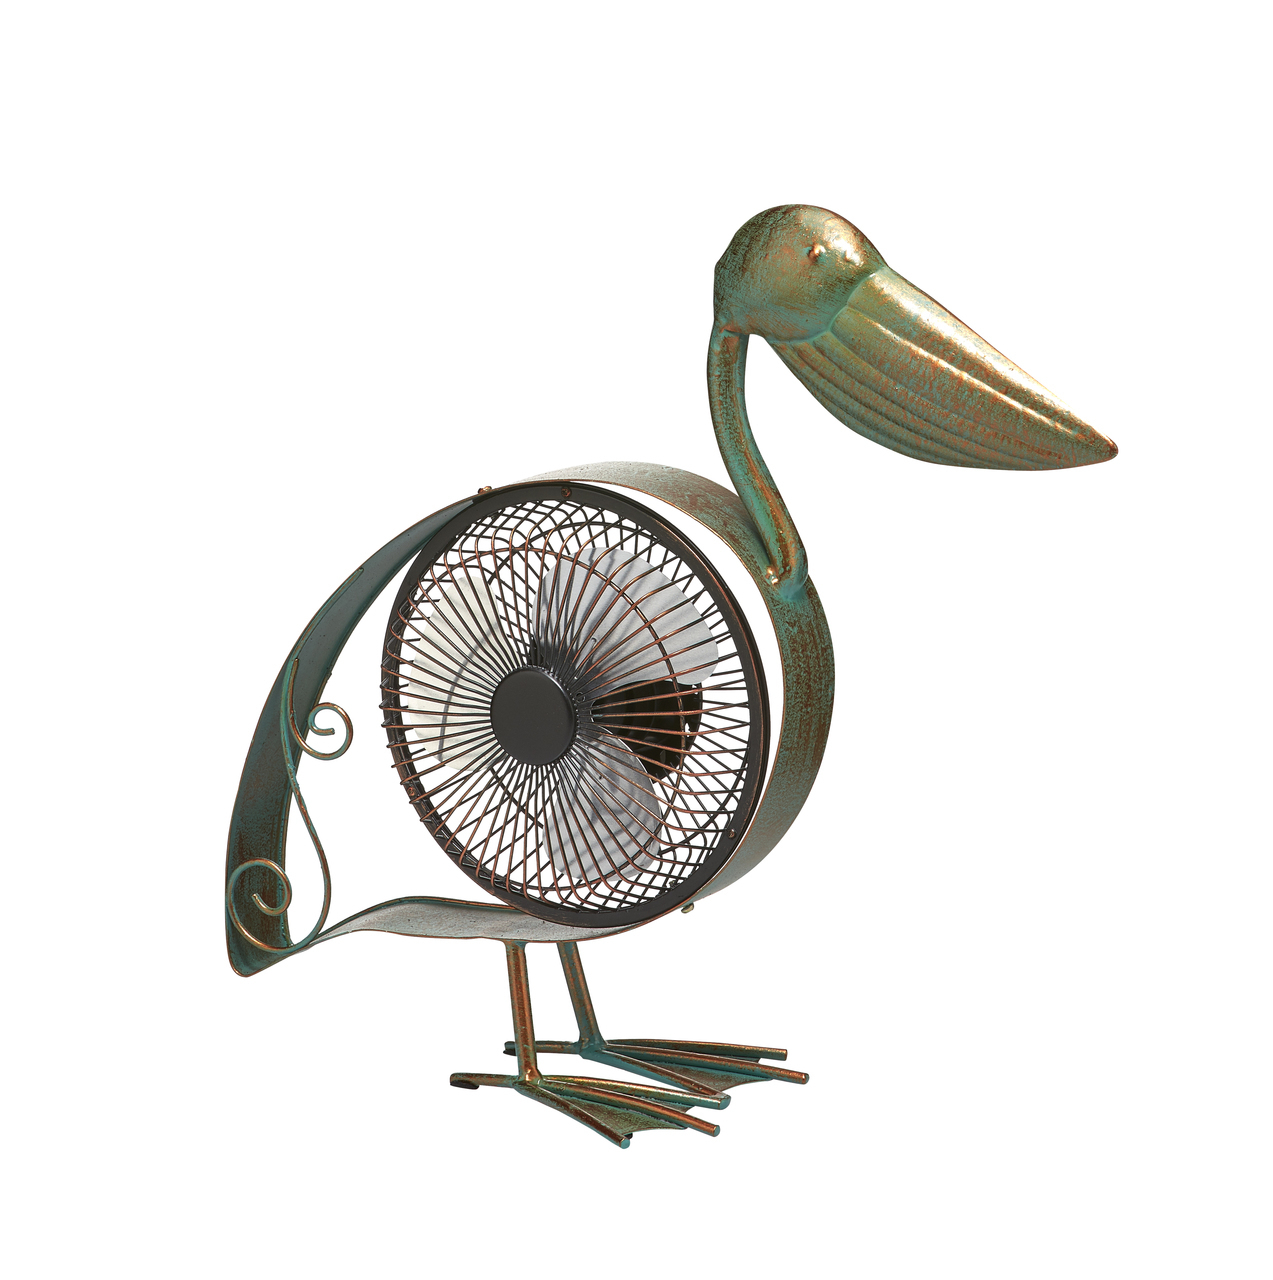 DecoBreeze USB Pelican Fan - DBF6163